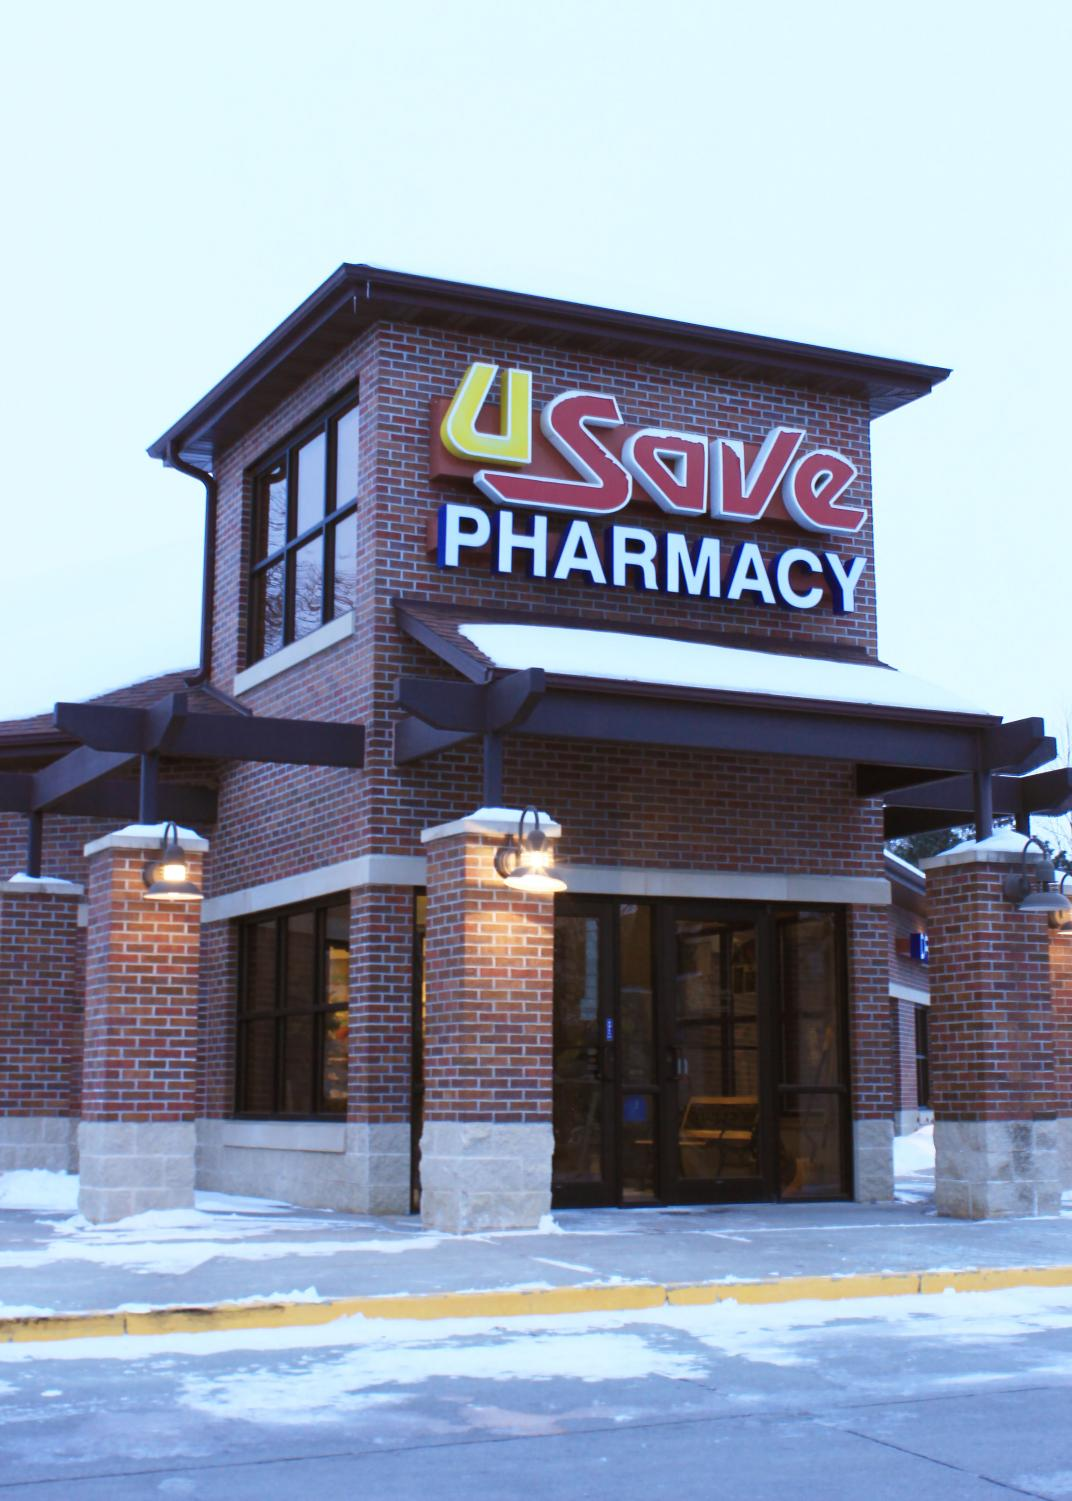 U-Save Pharmacy is currently the only pharmacy in Wayne.